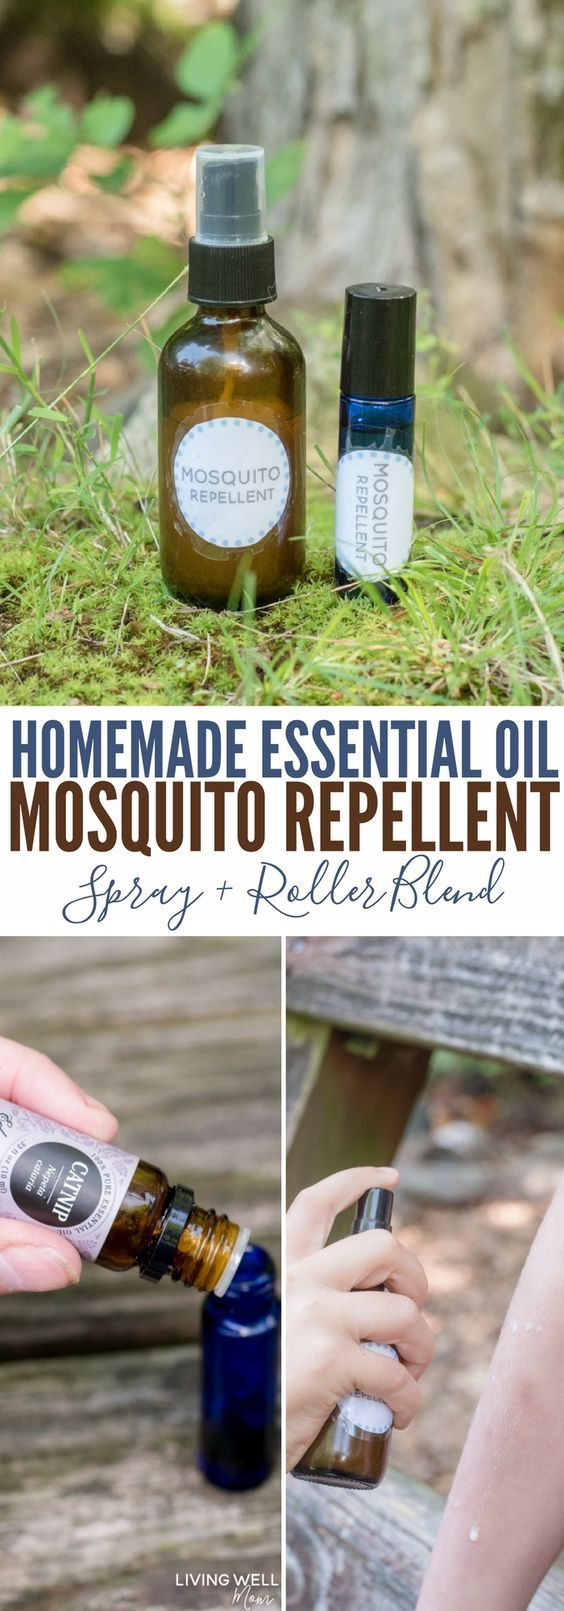 The last days of summer don't have to be itchy! Homemade mosquito repellent! 👌🏽🆒